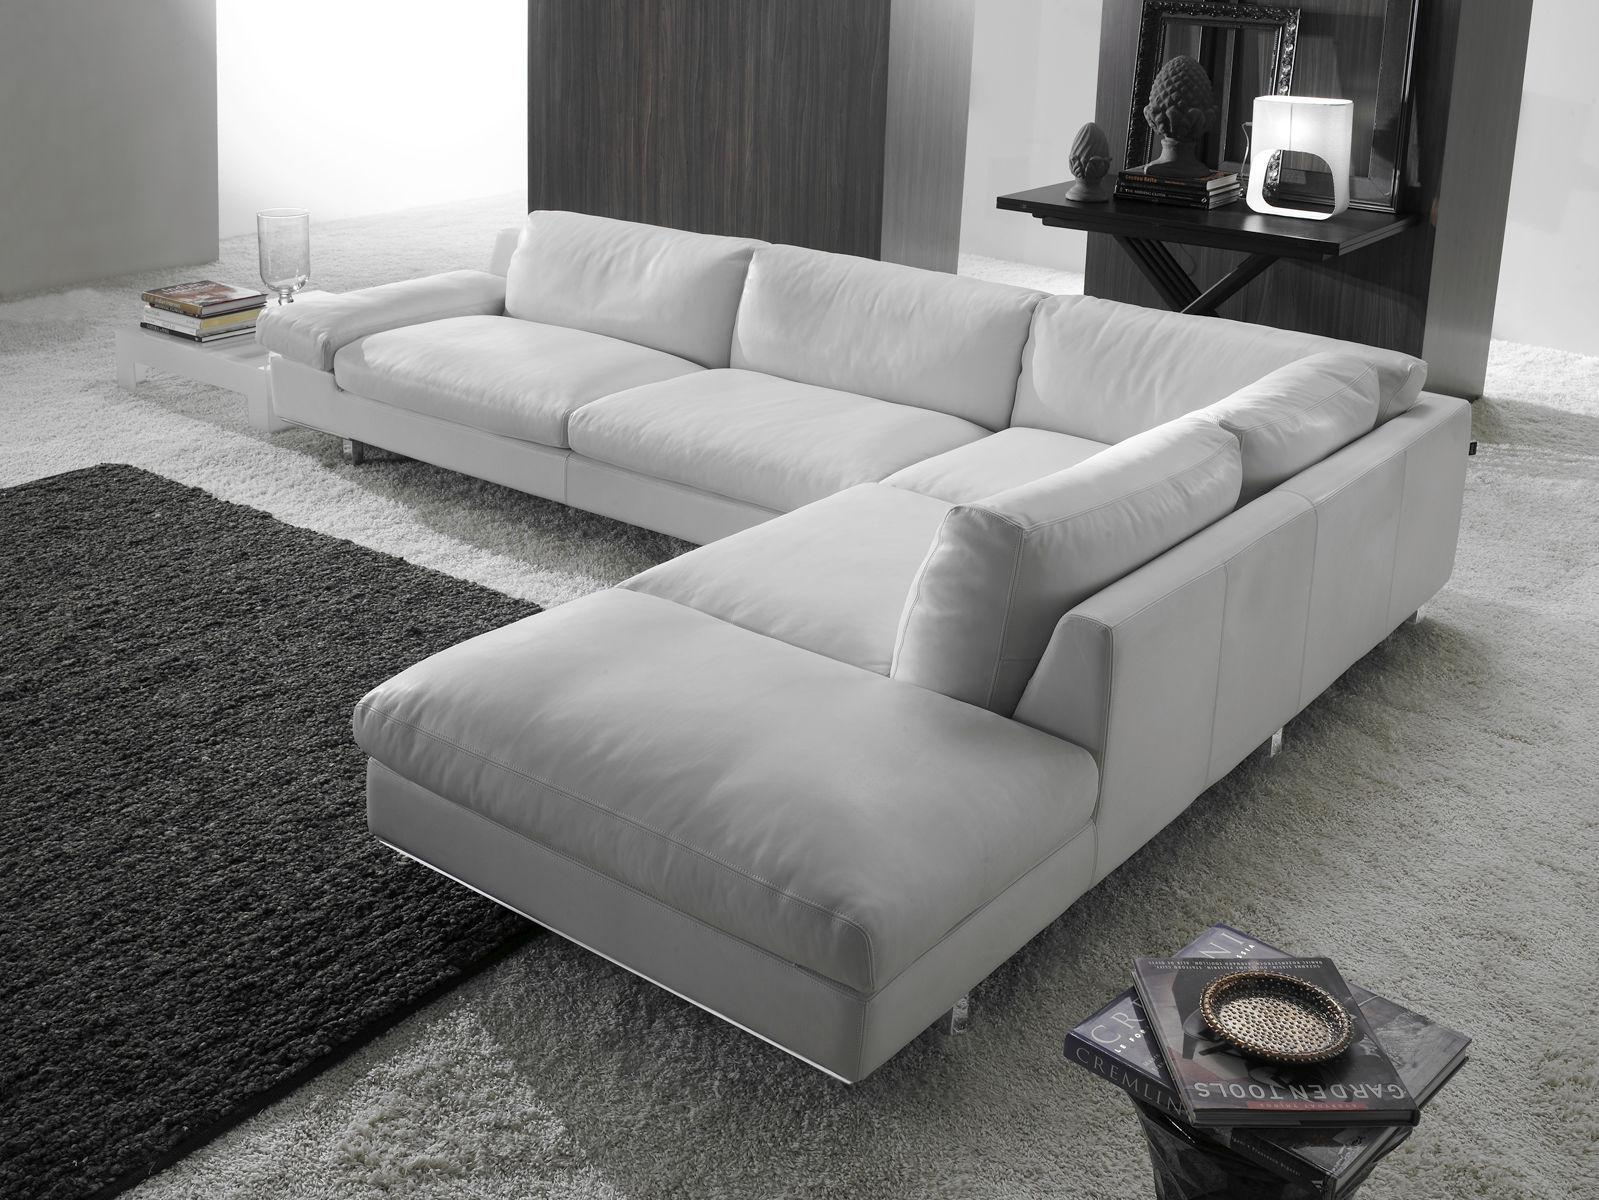 20 choices of four seat sofas sofa ideas. Black Bedroom Furniture Sets. Home Design Ideas